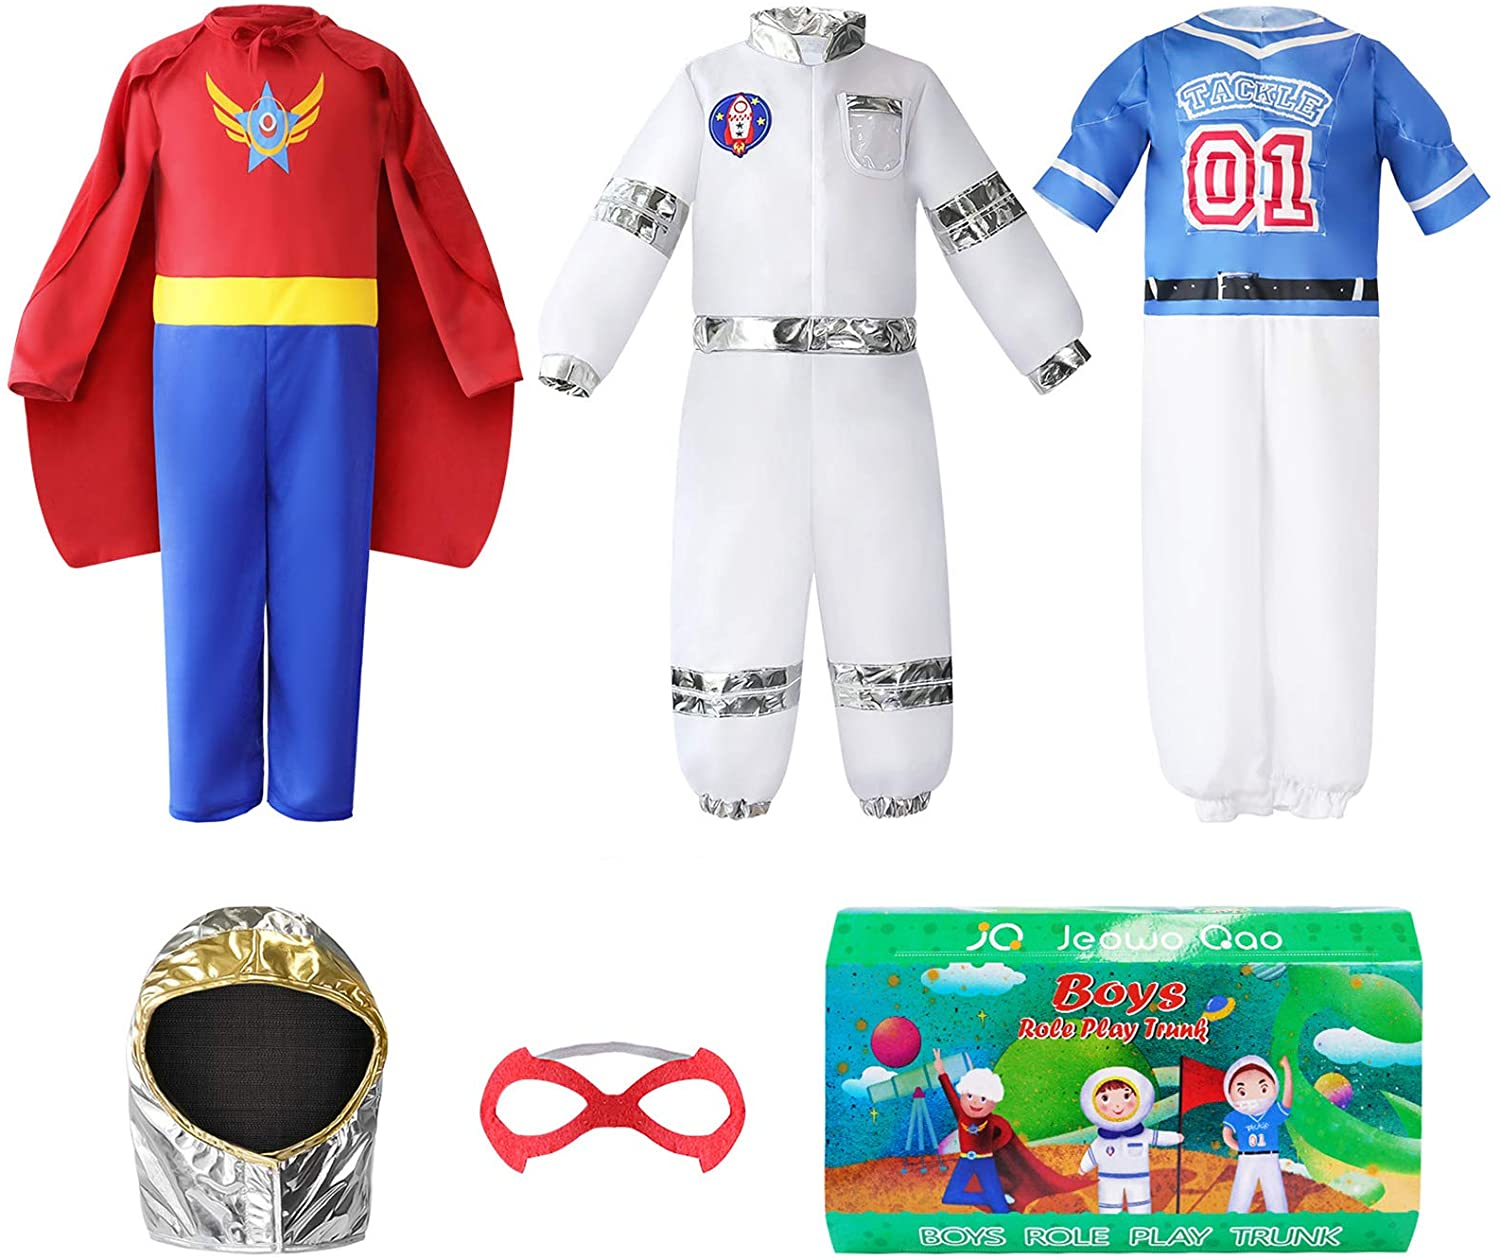 Boys Dress up Trunk Costumes Set, Jeowoqao Kids Dress up Clothes Set, Superman, Astronaut, Footballer Costume for Children ages 3-6